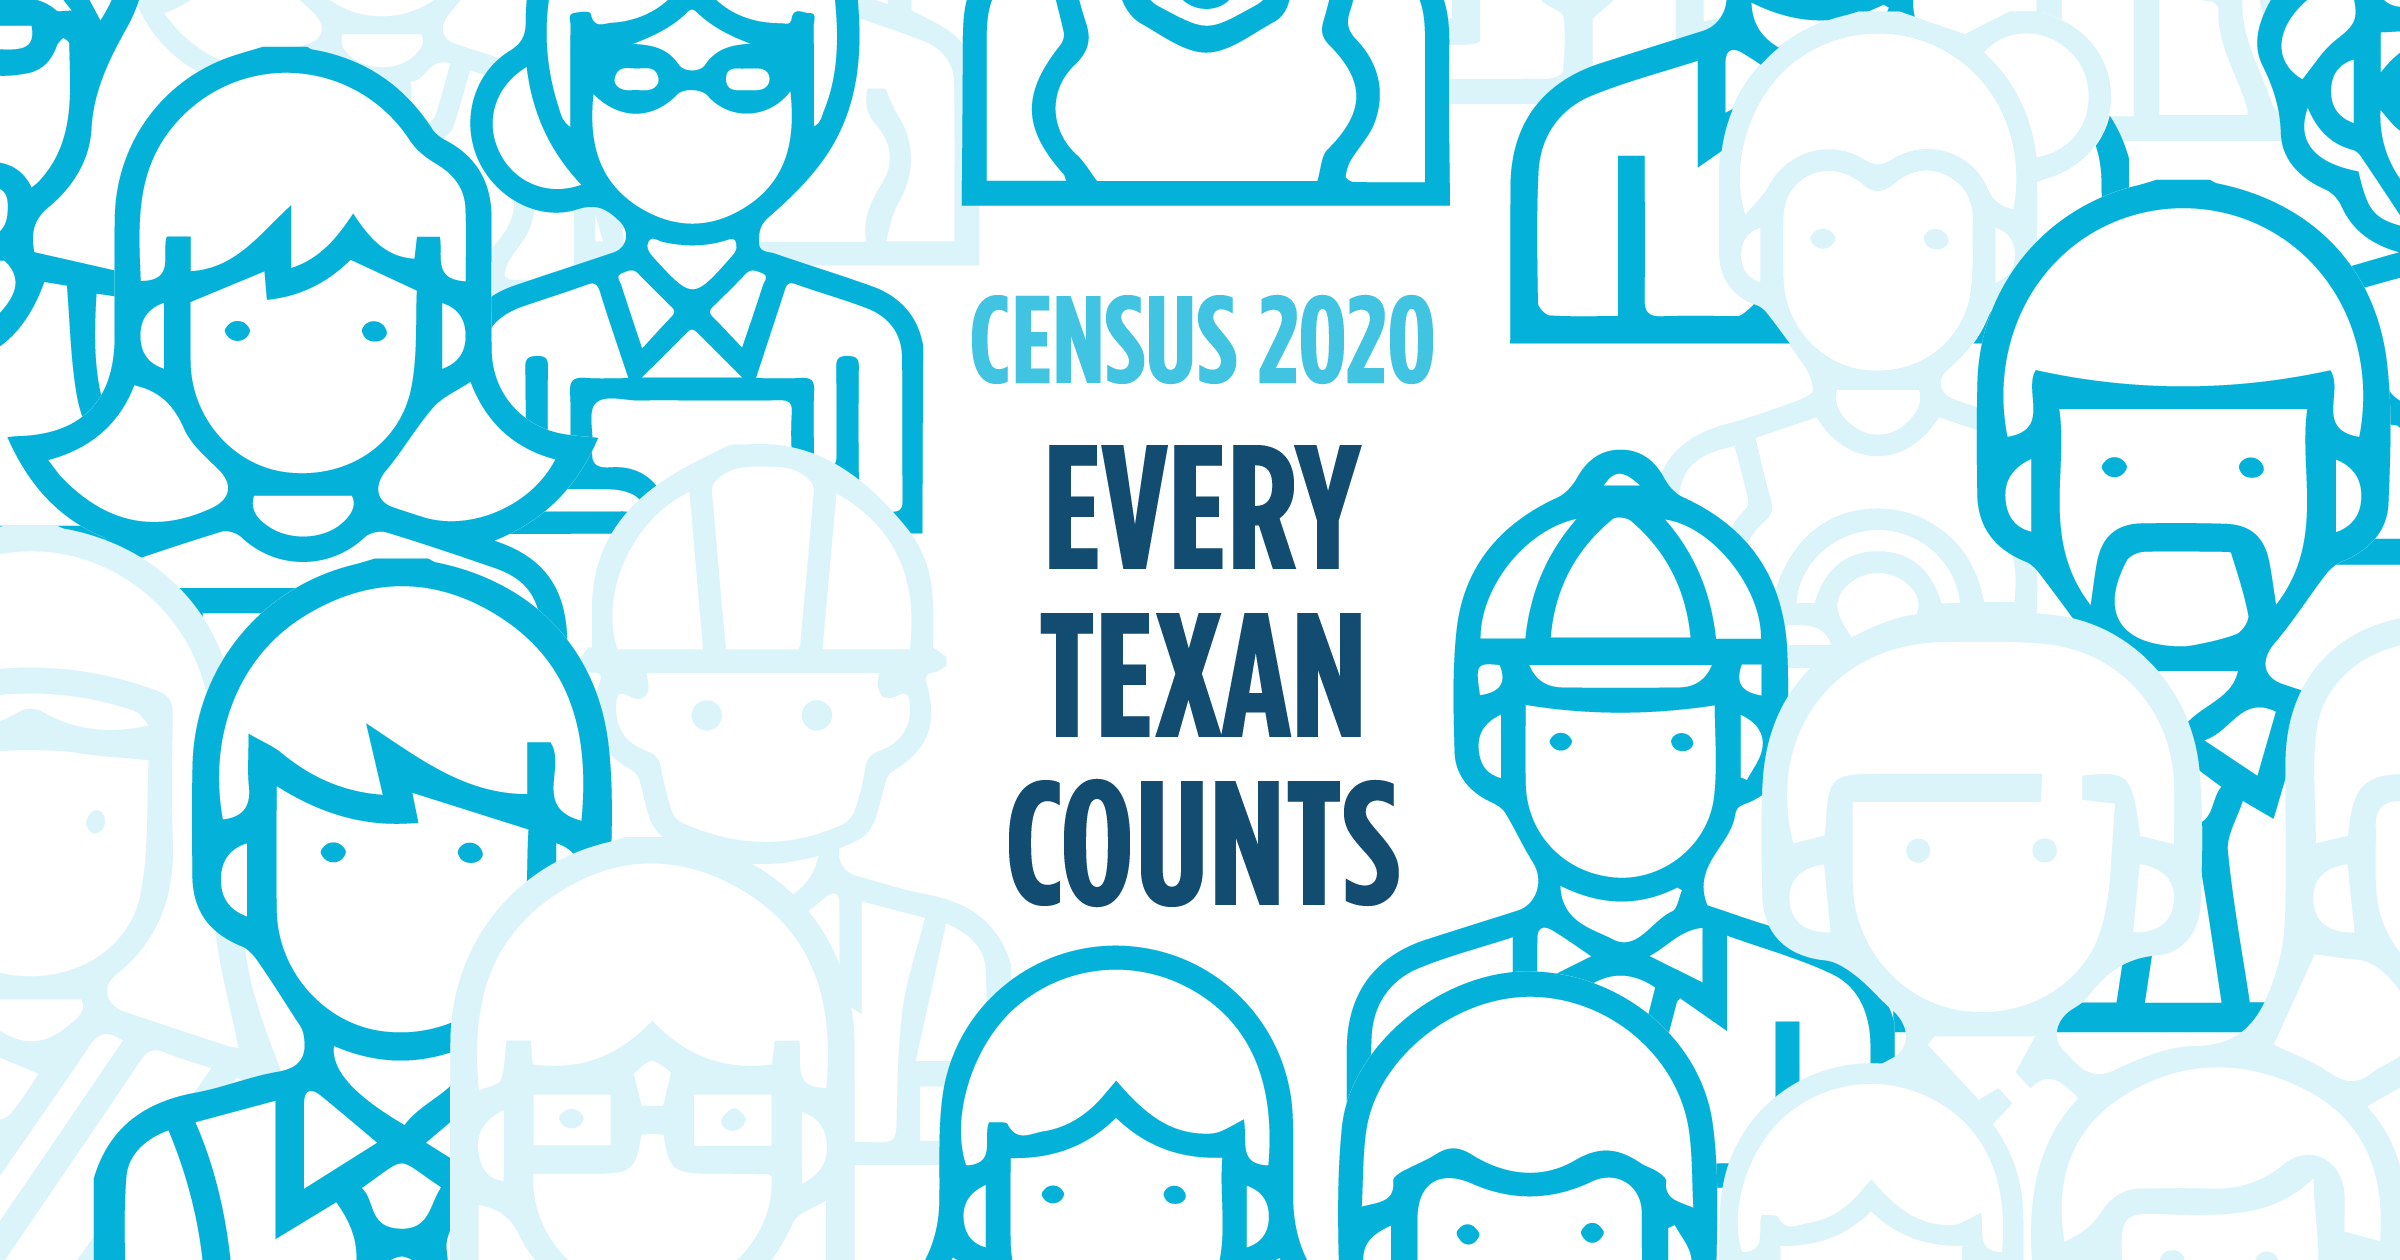 Every Texan Counts: Ensure Full Representation in the 2020 Census